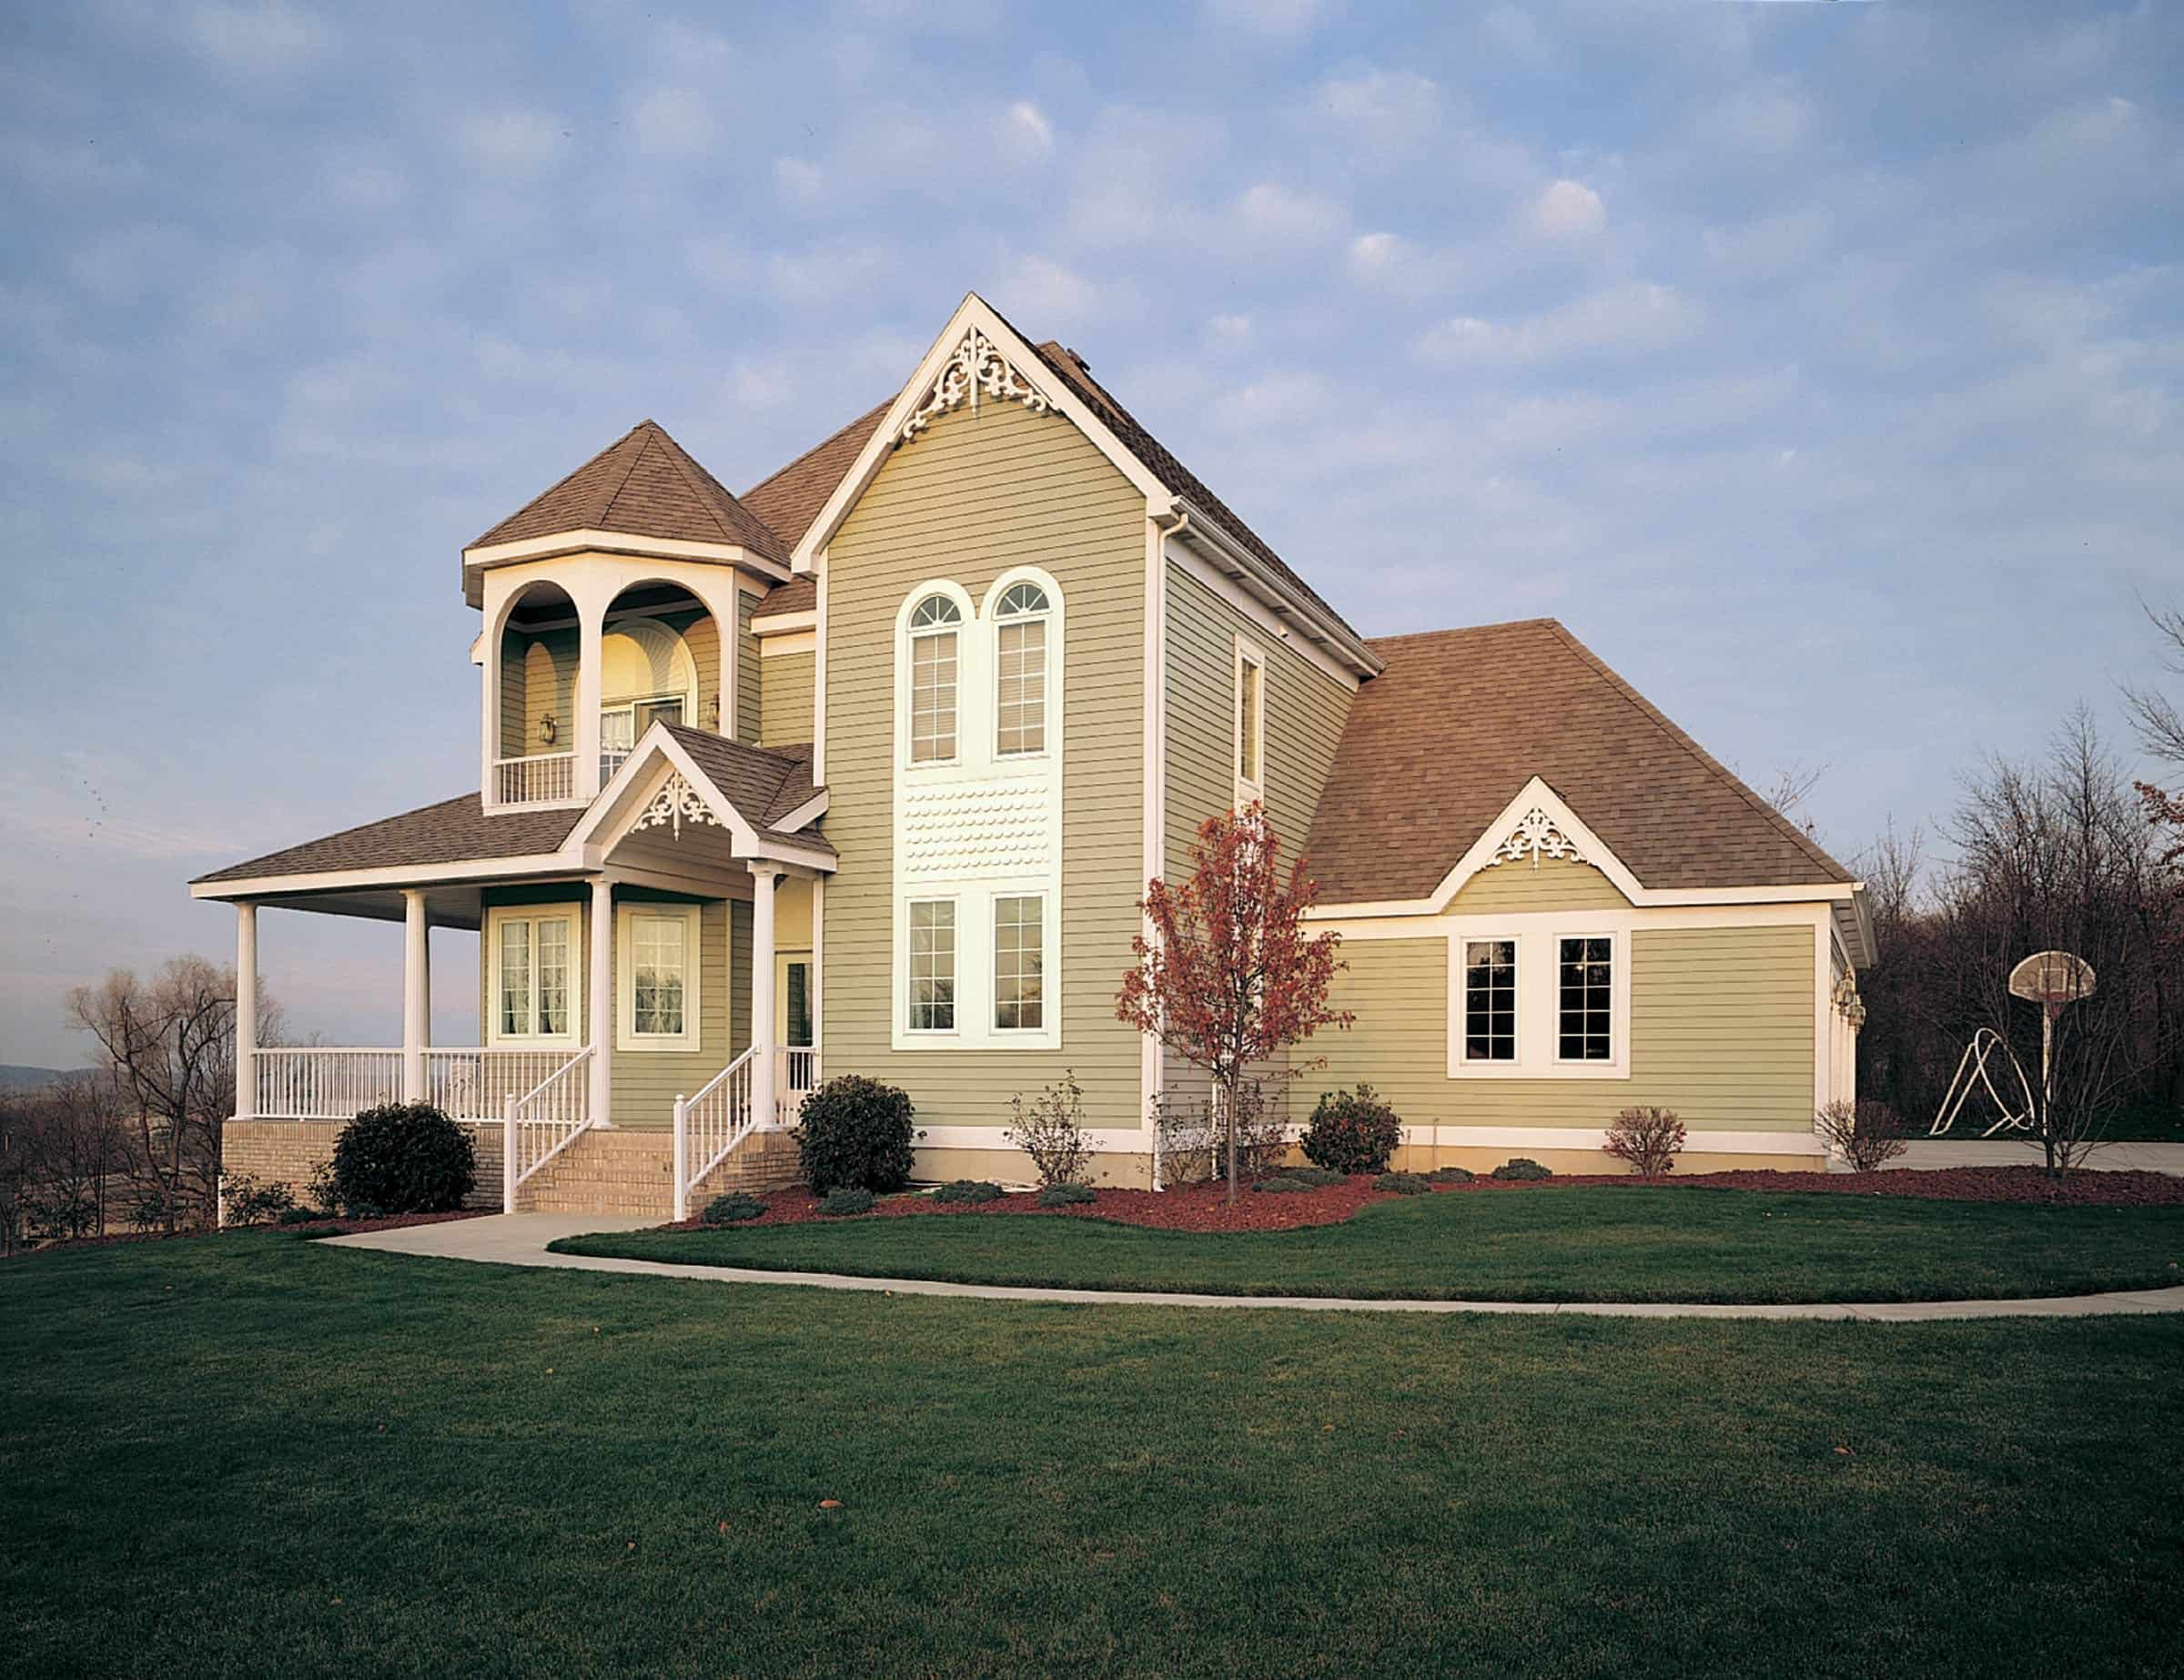 Mastic home exteriors and siding products for Mastic home exteriors